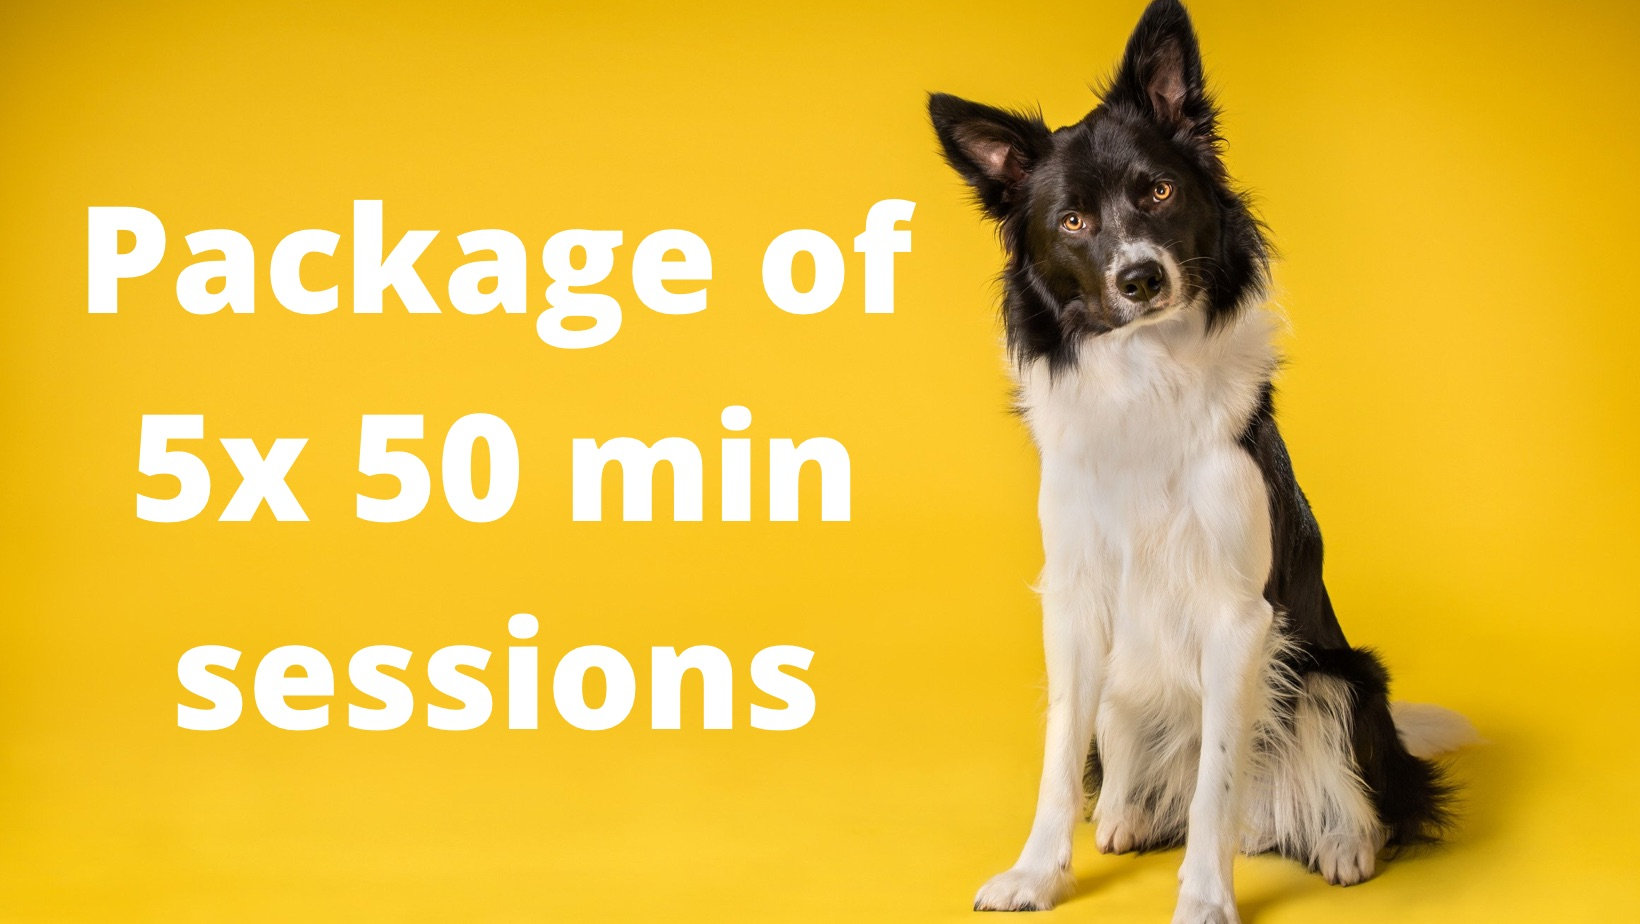 £30 for five 50 min sessions